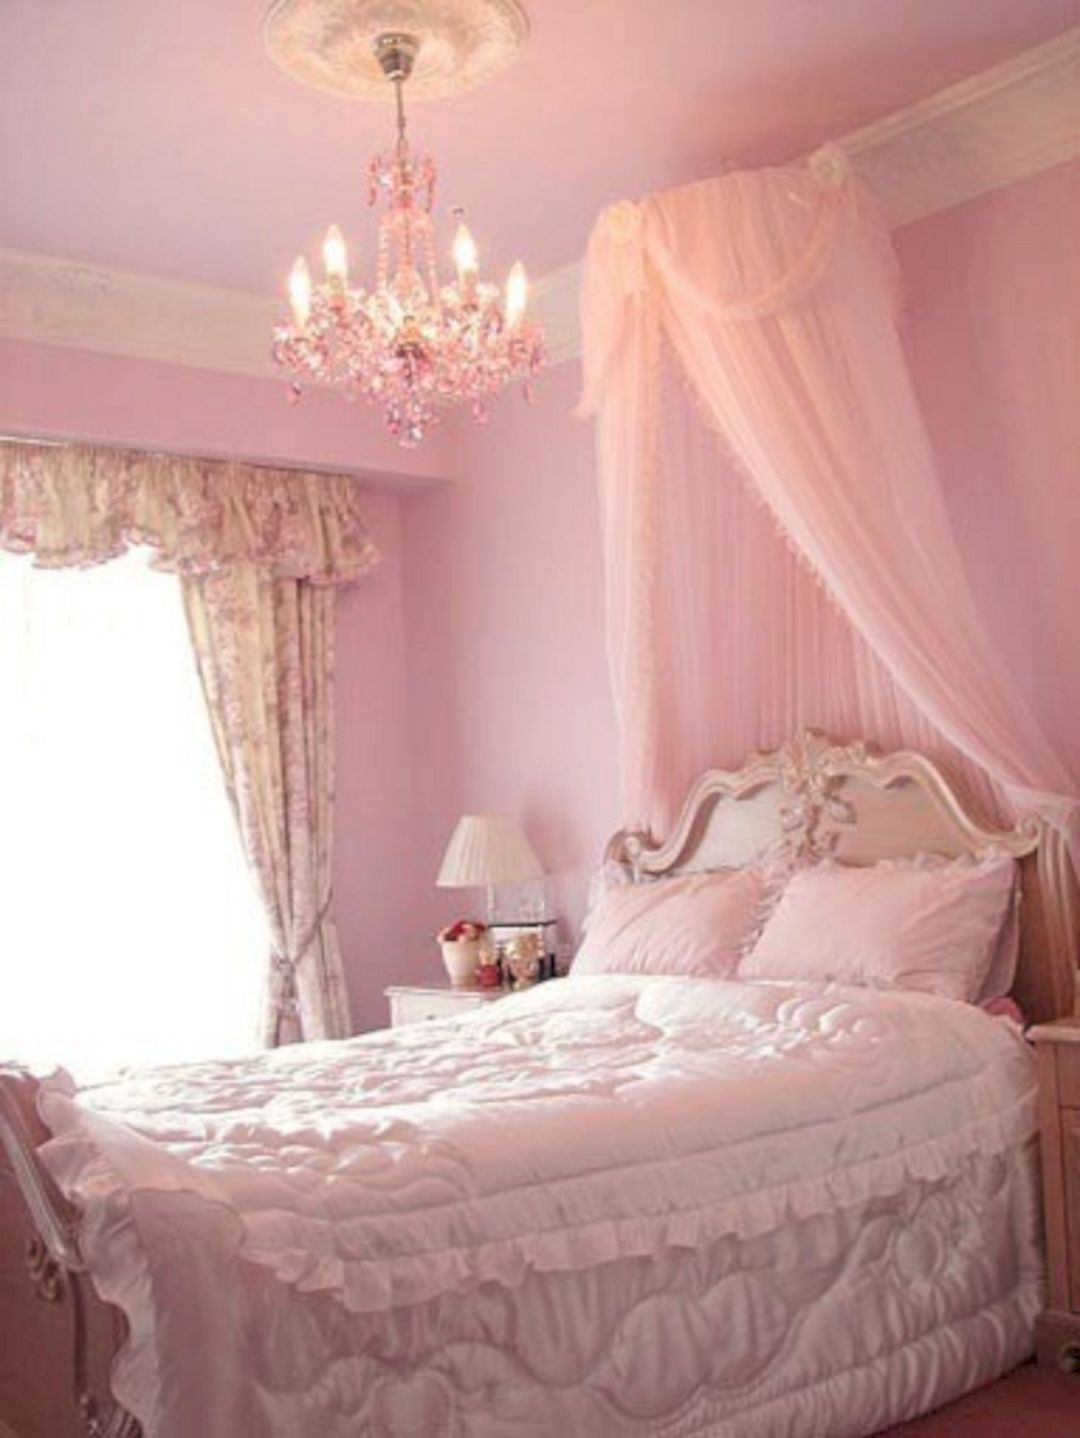 beautiful princess canopy bed. A Girl Needs To Get Guts Wear This Sort Of Perfume. All Girls Have Tendency Want Be Princesses Residing In Lovely Castle Surrounded By The Beautiful Princess Canopy Bed